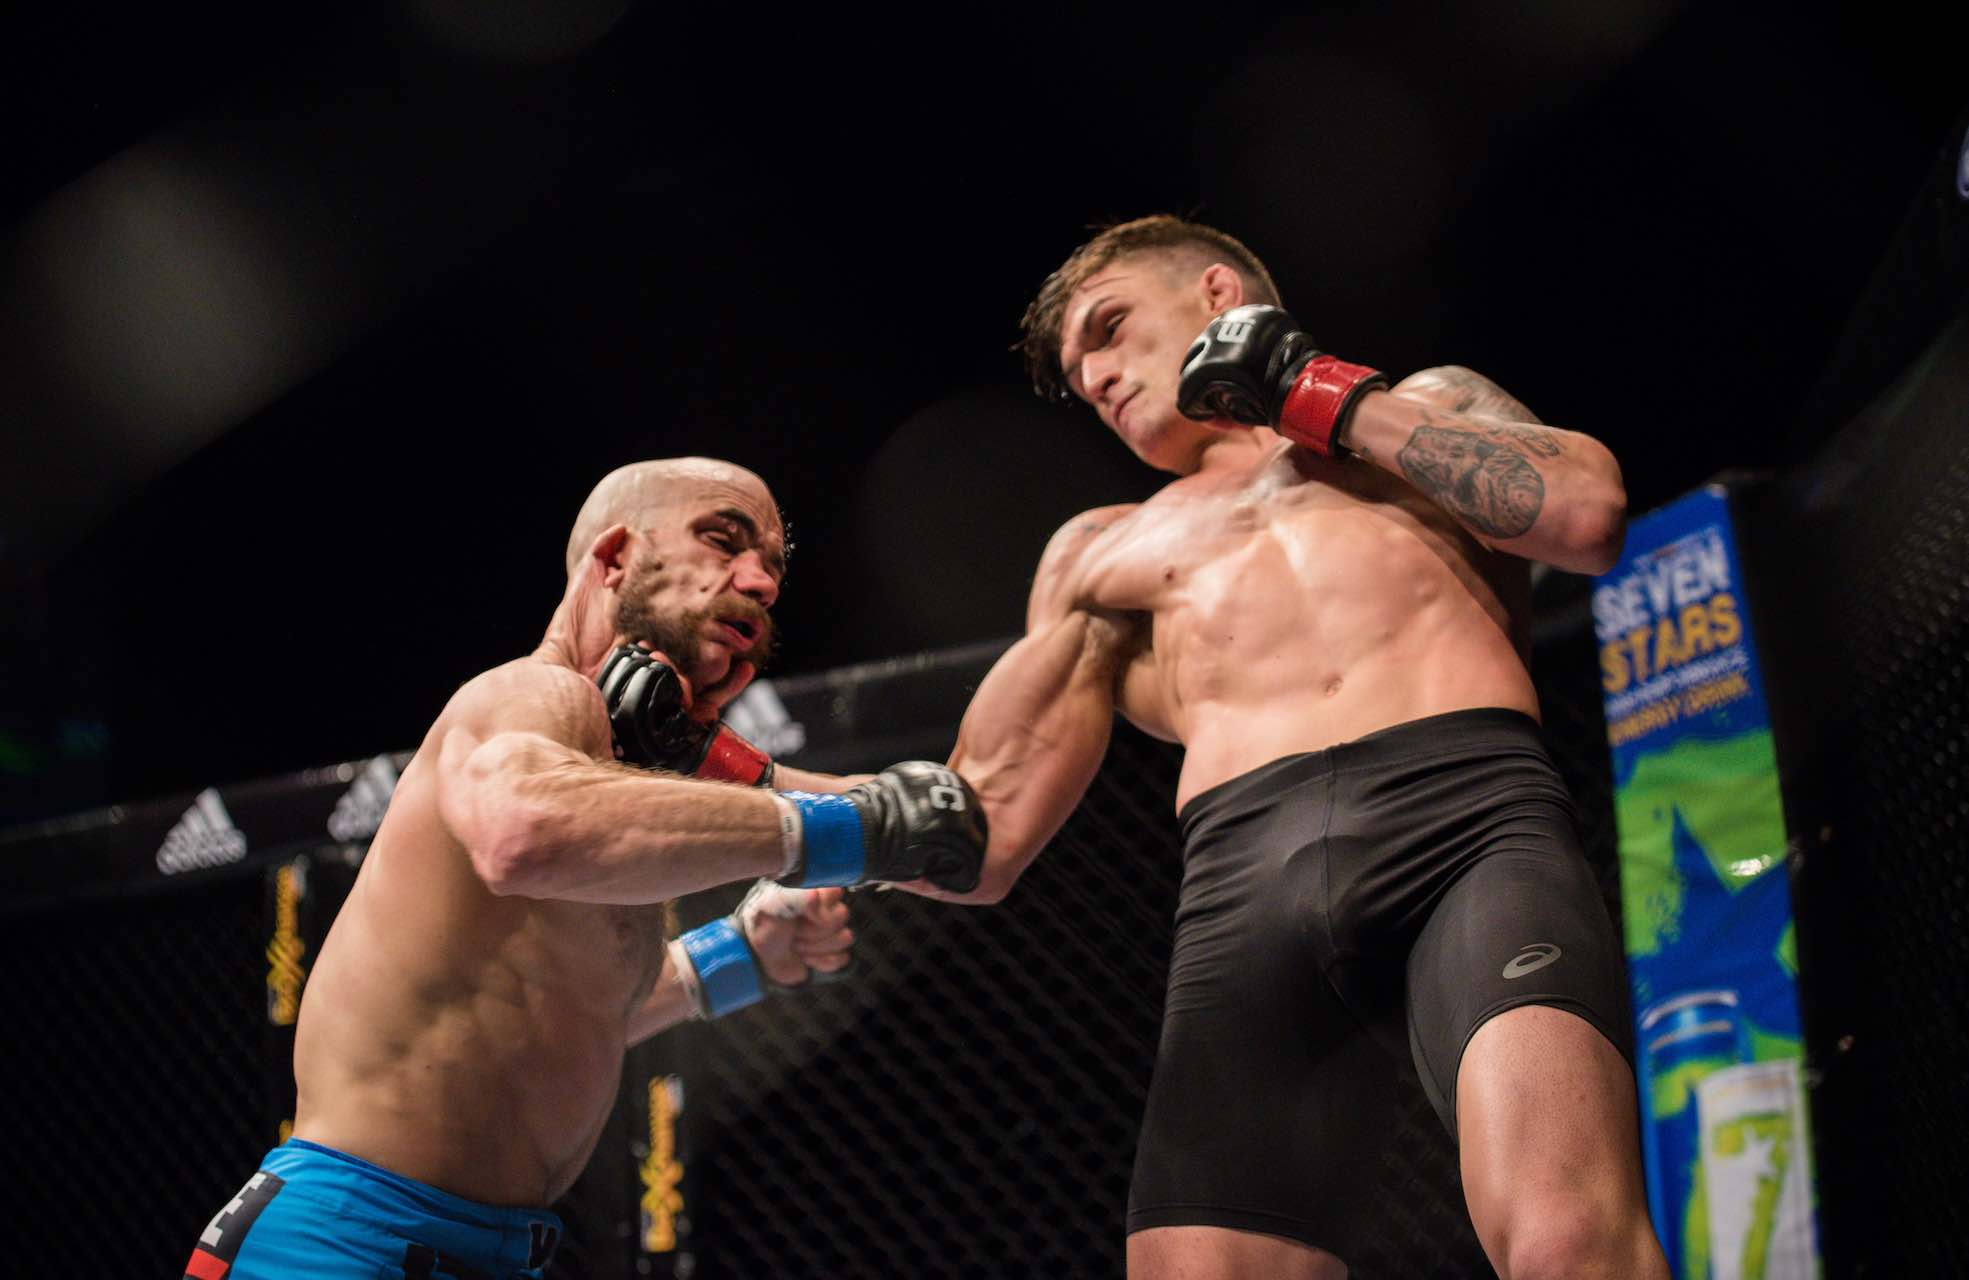 EFC 58 produced an exciting night of MMA Action in Cape Town